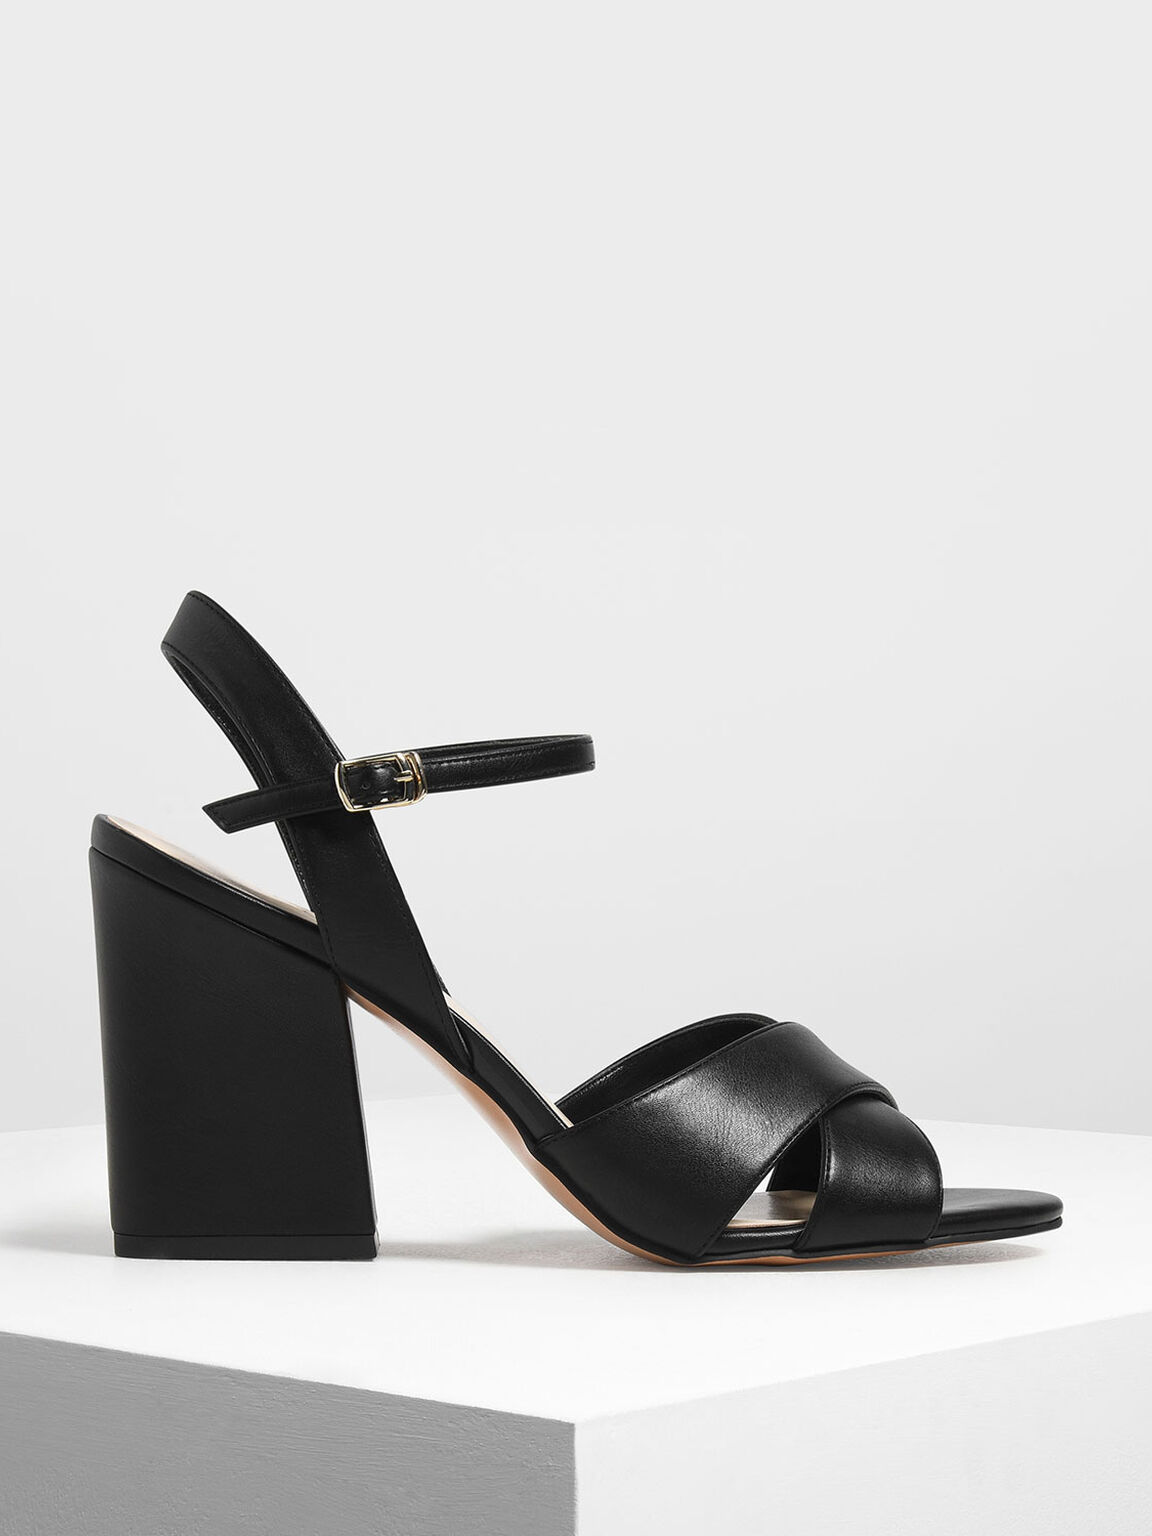 Criss Cross Block Heel Sandals, Black, hi-res